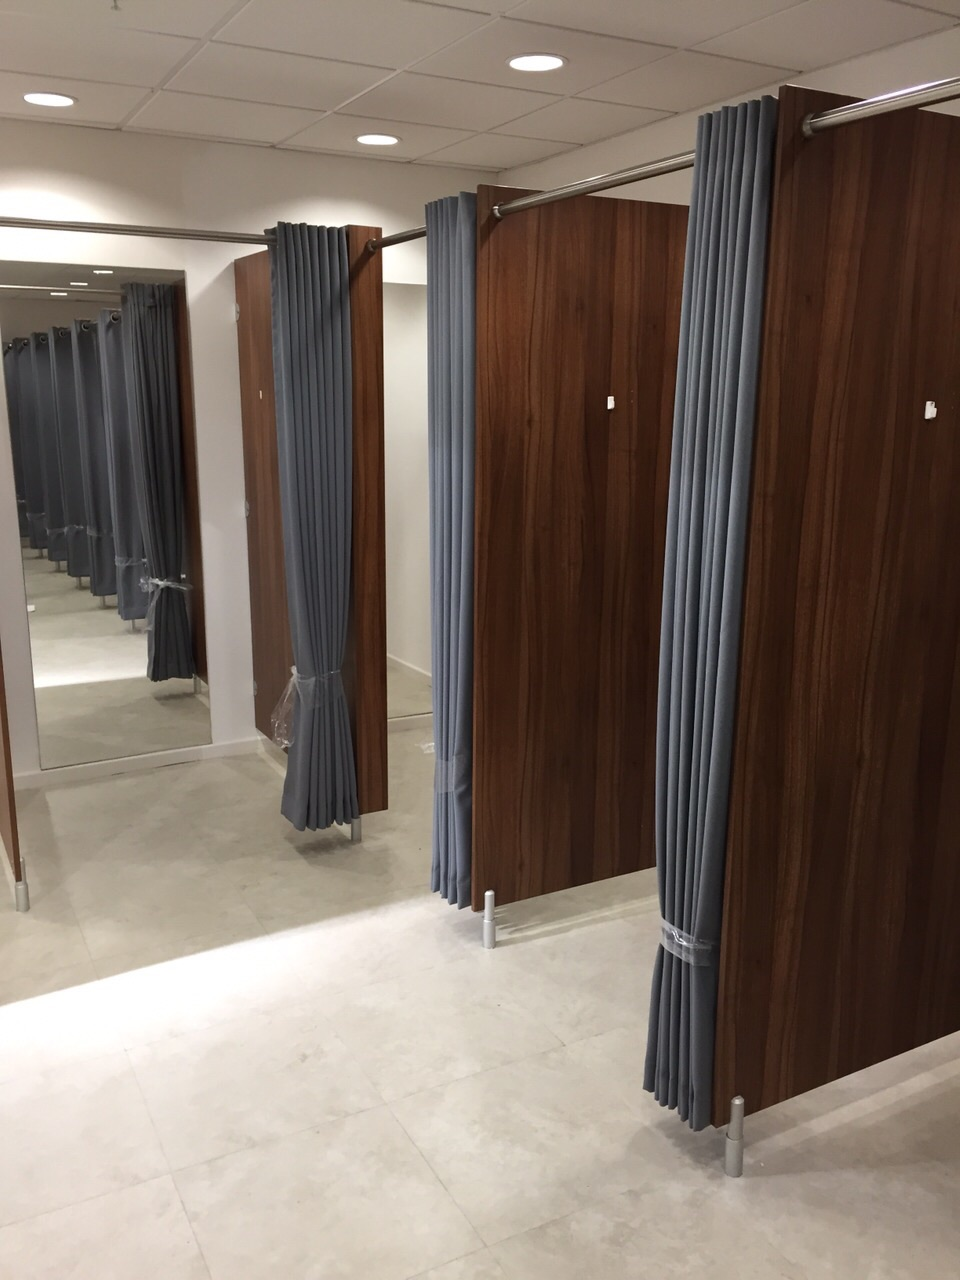 Fitting Room Designs For Retail: Shop Fitting Room Cubicle Curtains For PEP & Co Stores In